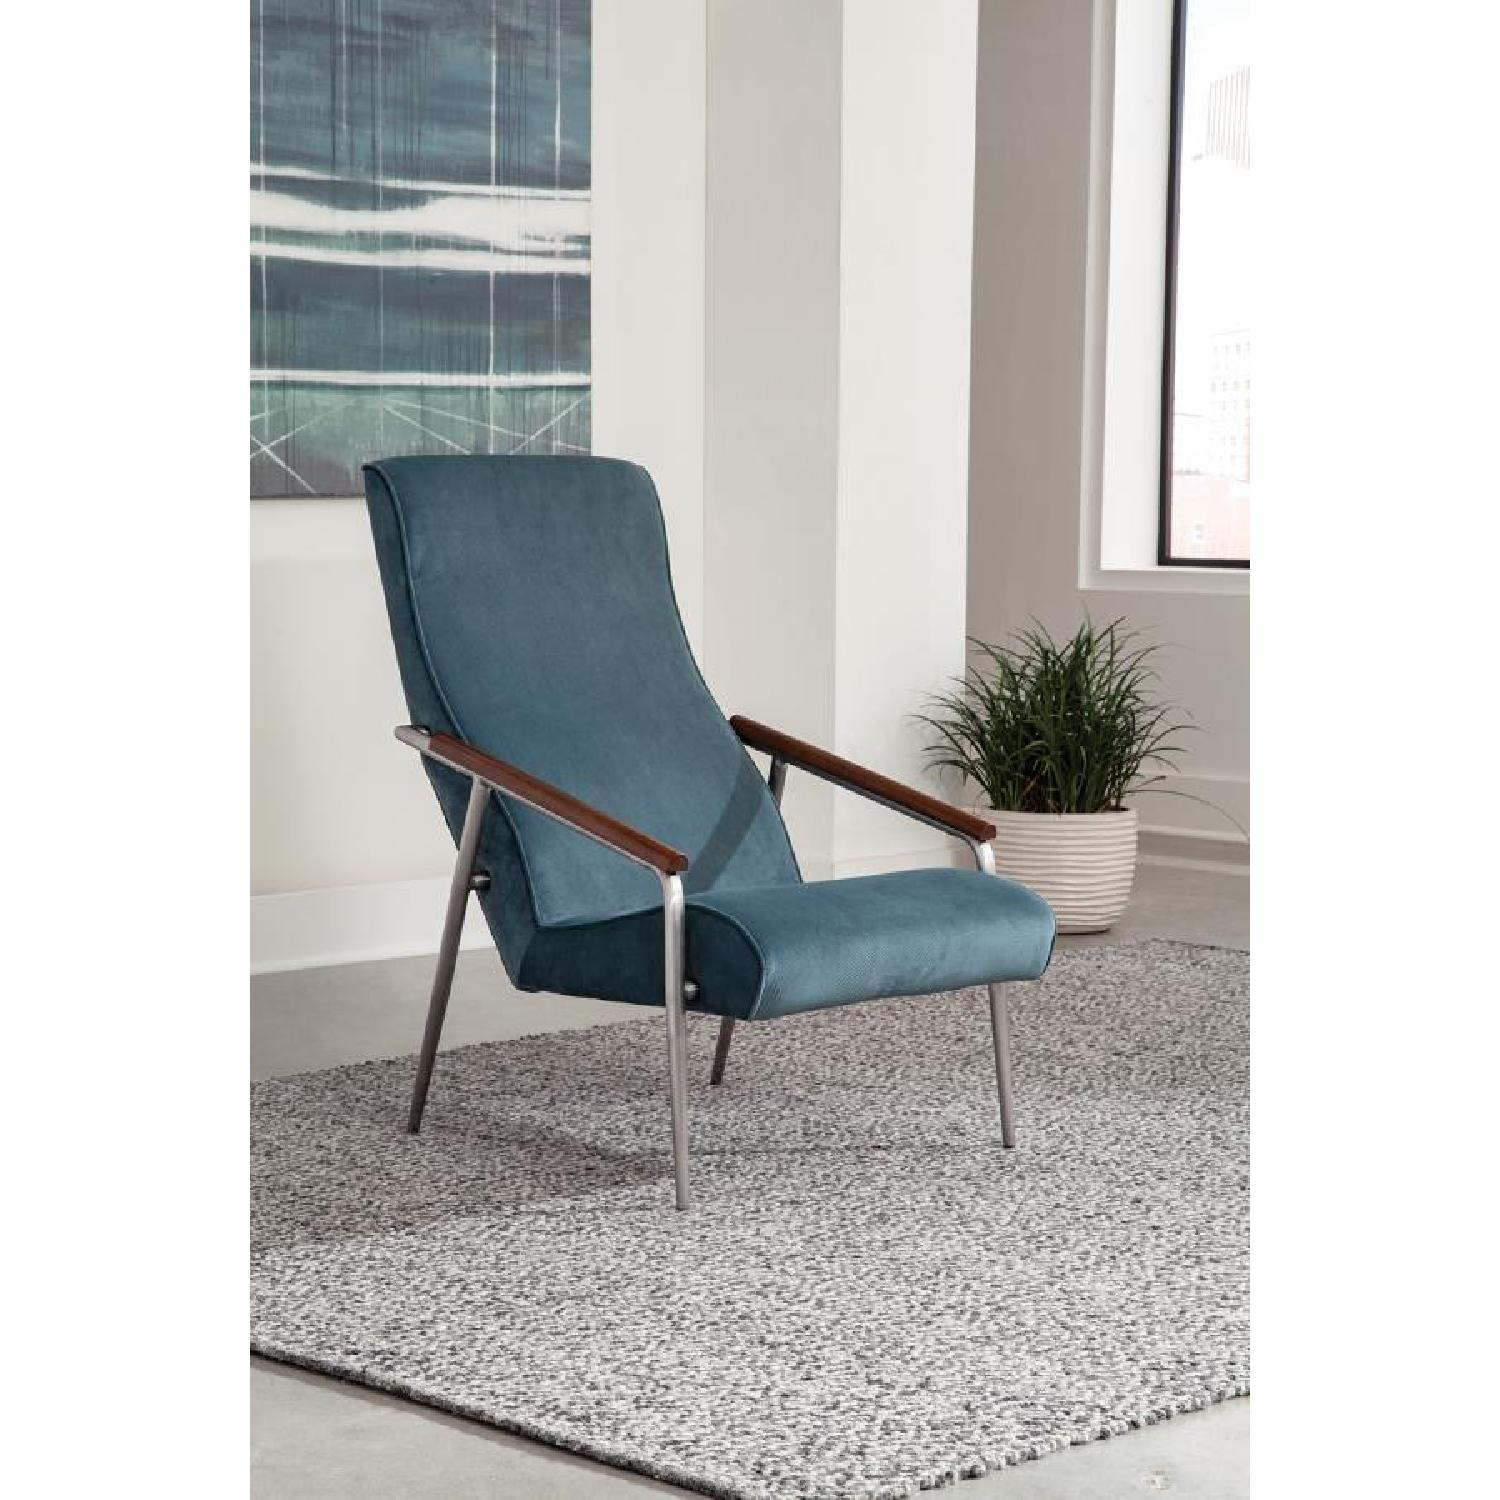 Chic Accent Chair in Teal Velvet Fabric - image-2